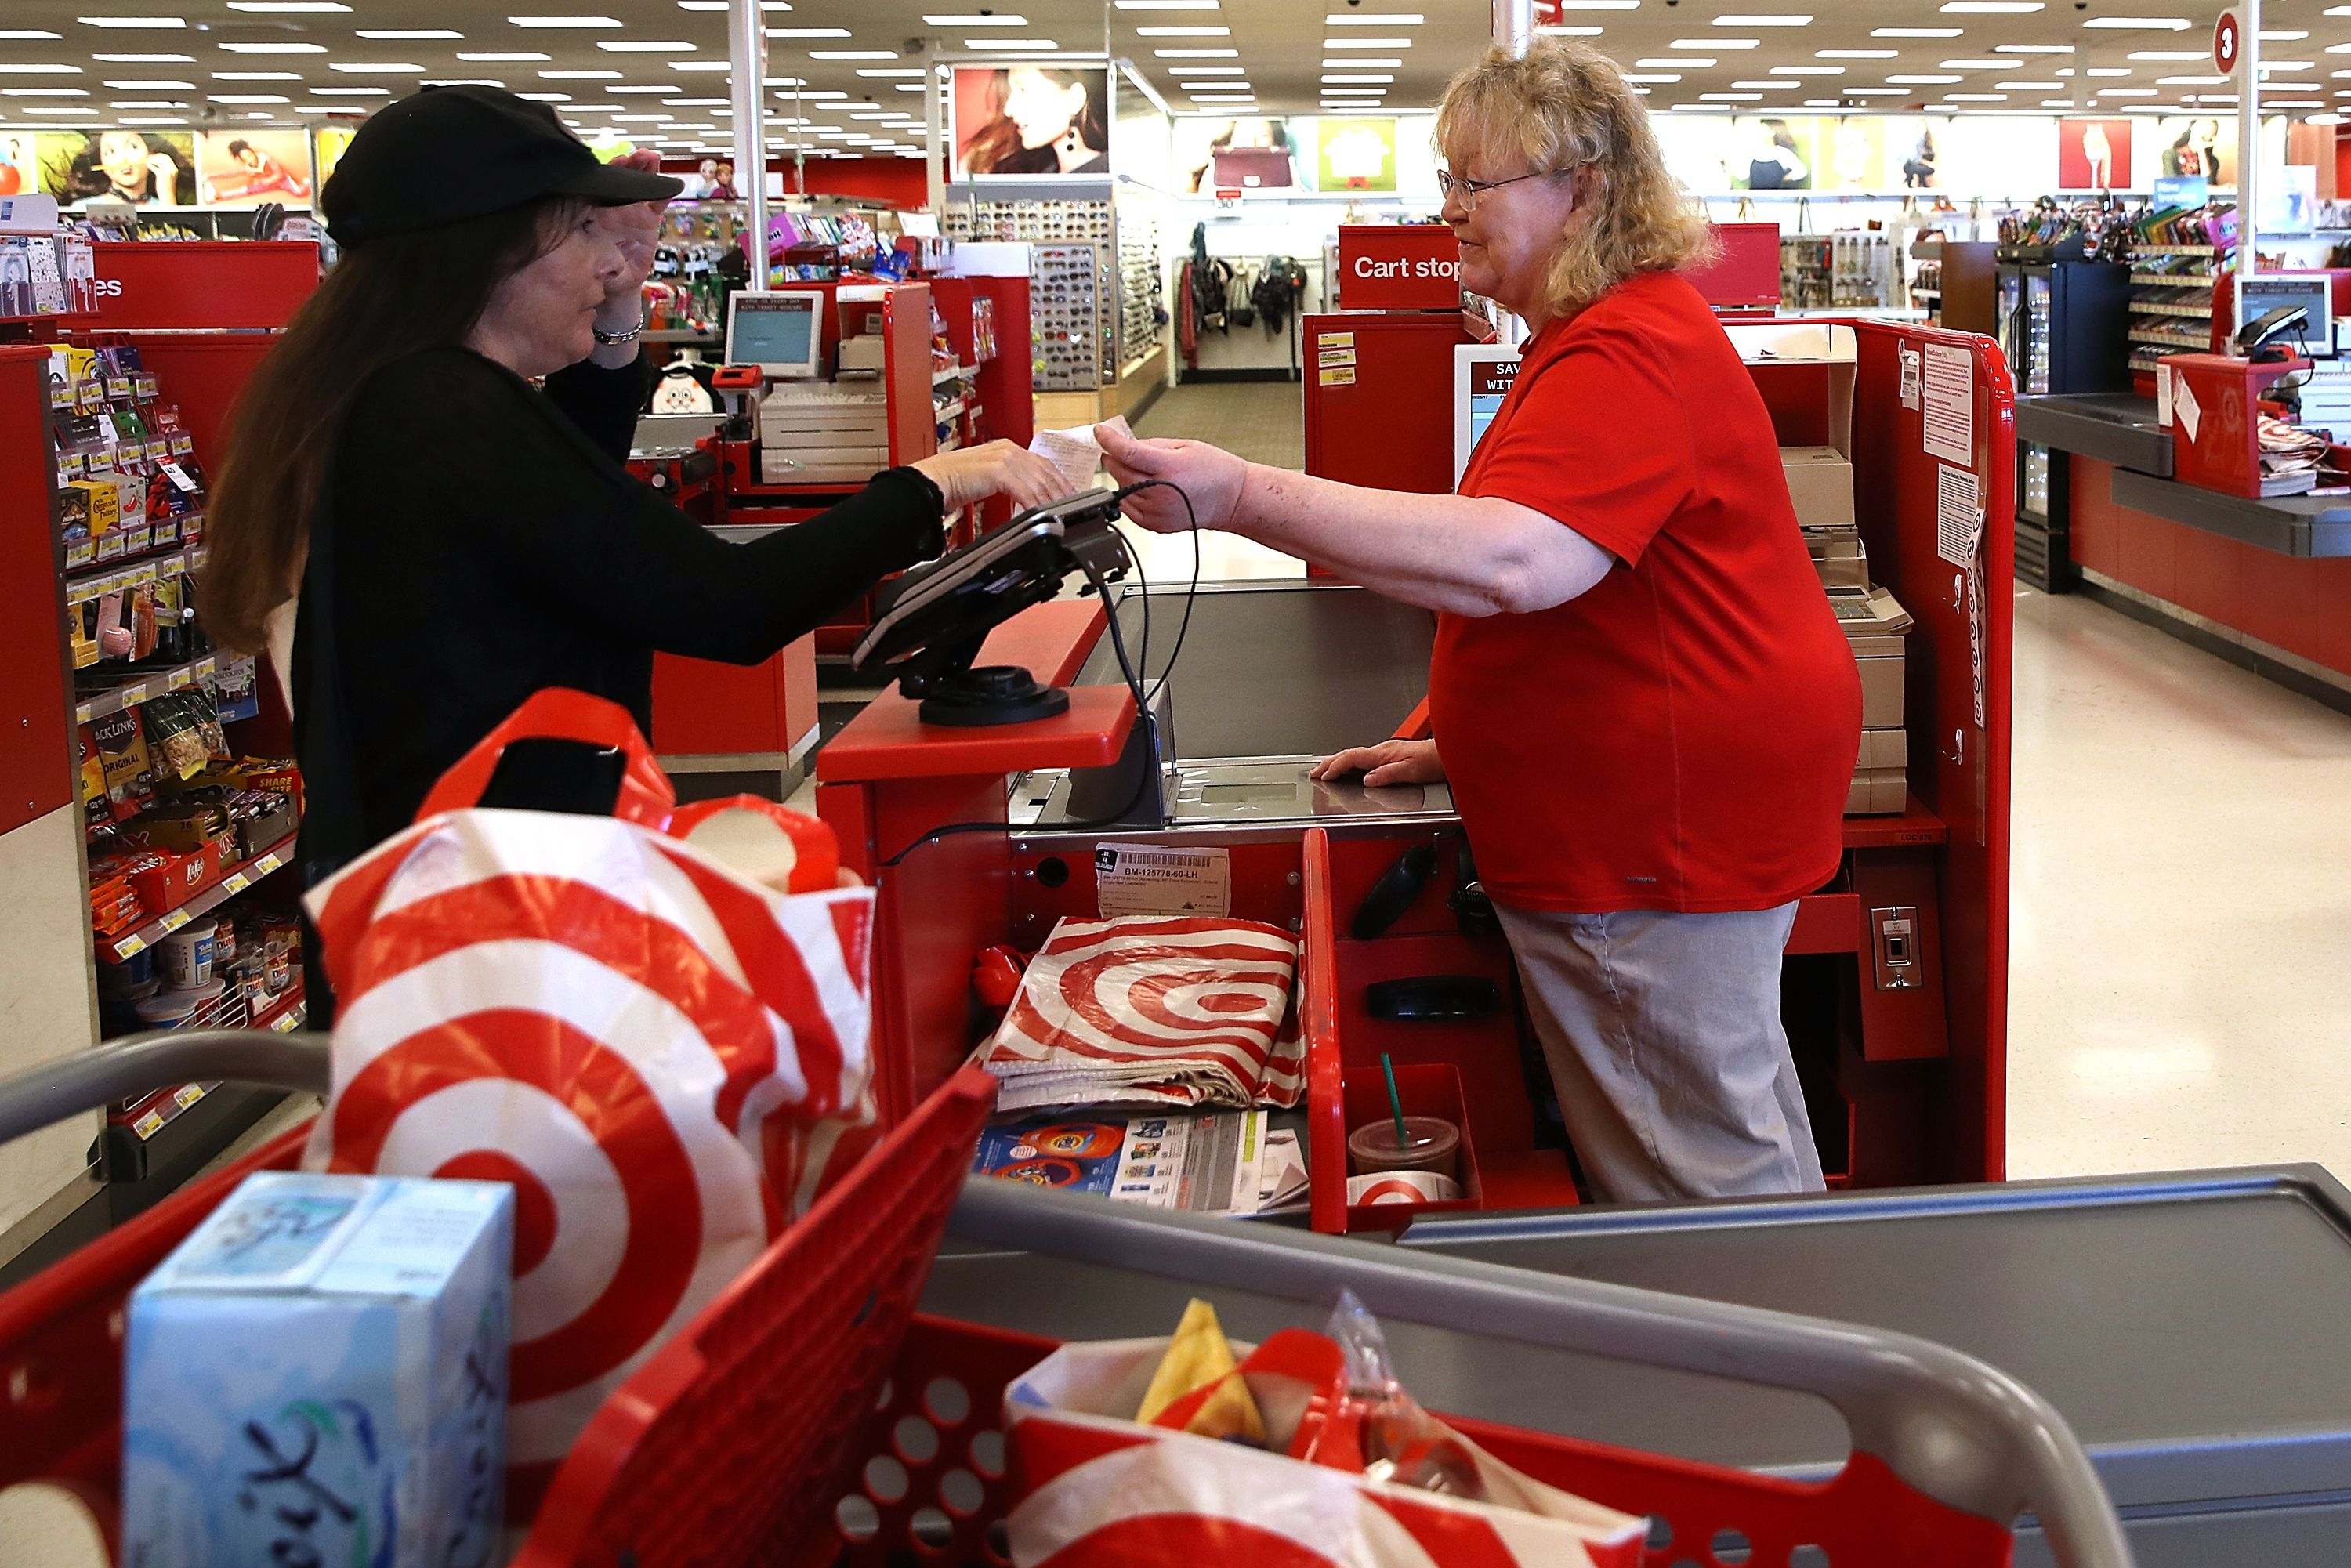 Target's Q1 shows it has a recipe to beat Amazon and win in retail